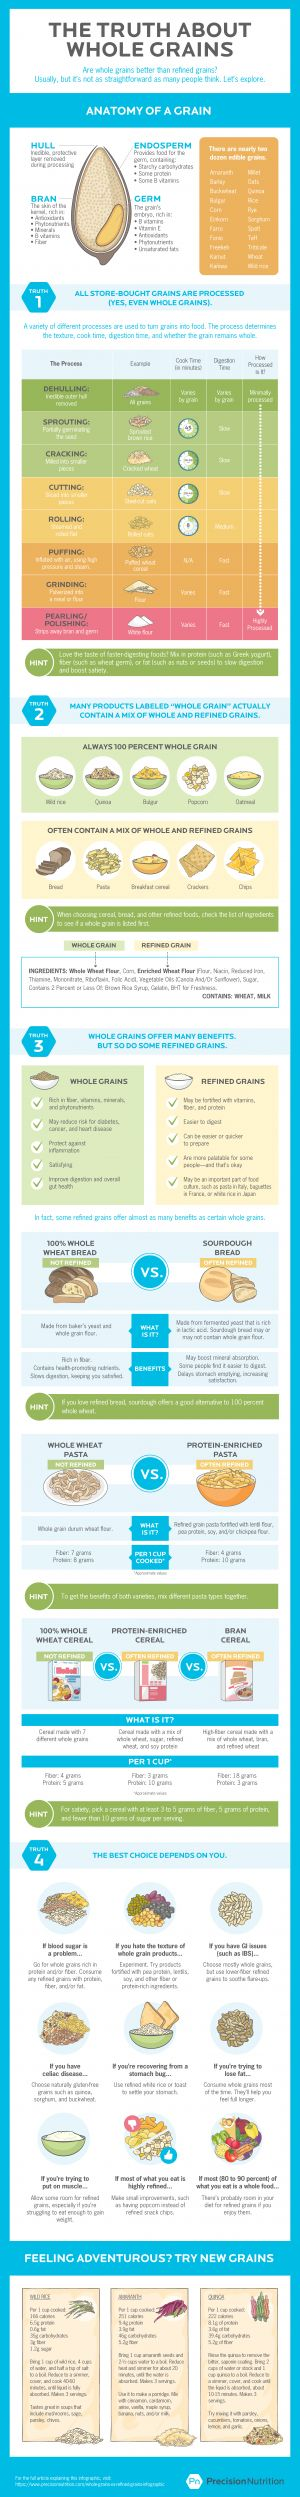 The truth about whole grains vs. refined grains